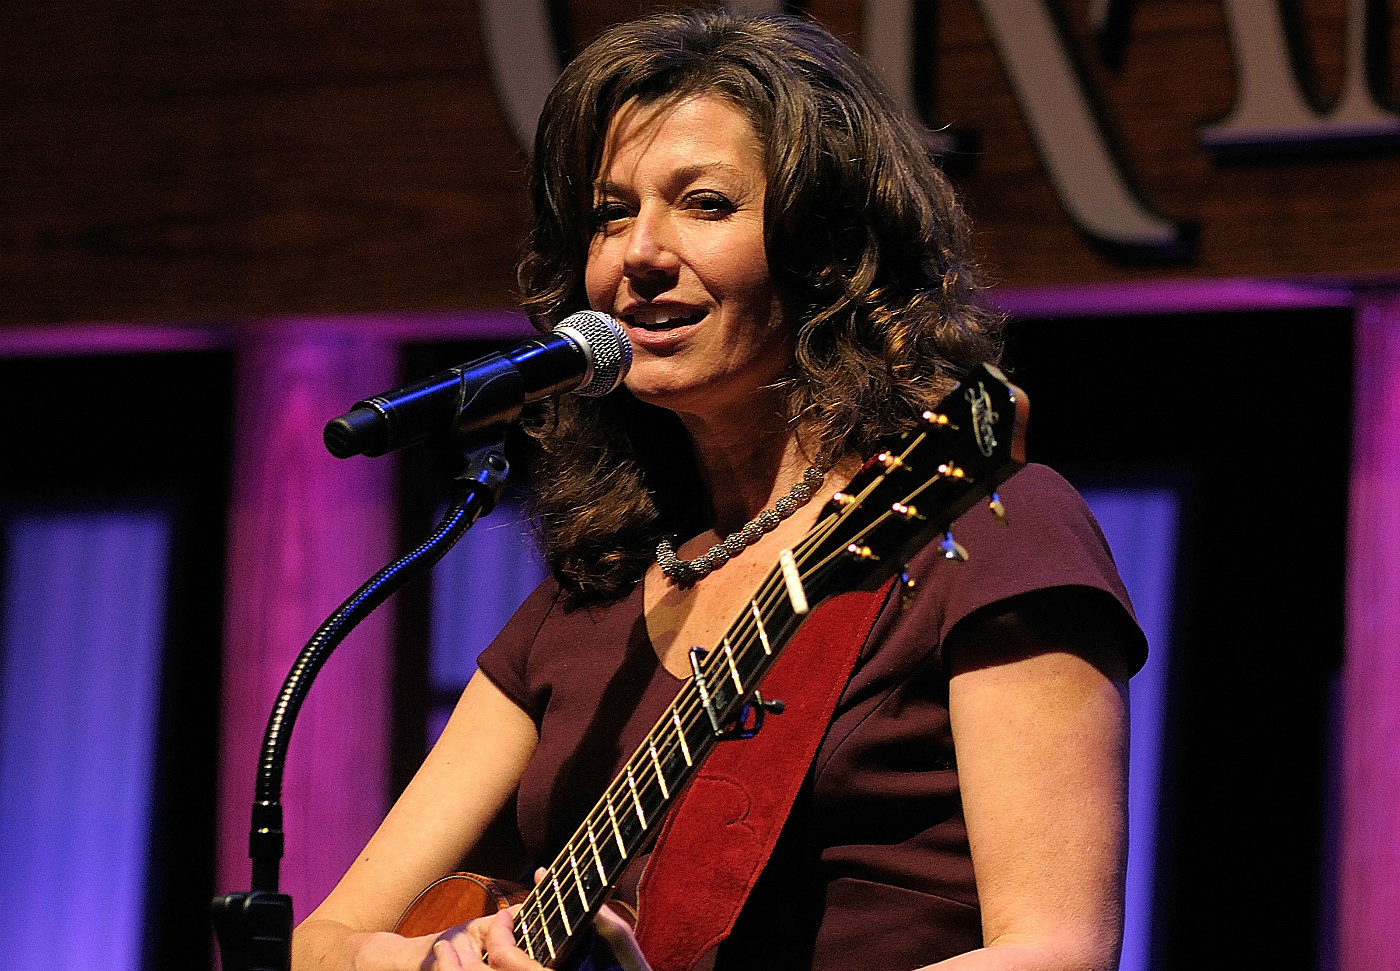 Amy Grant and Guitar on Stage